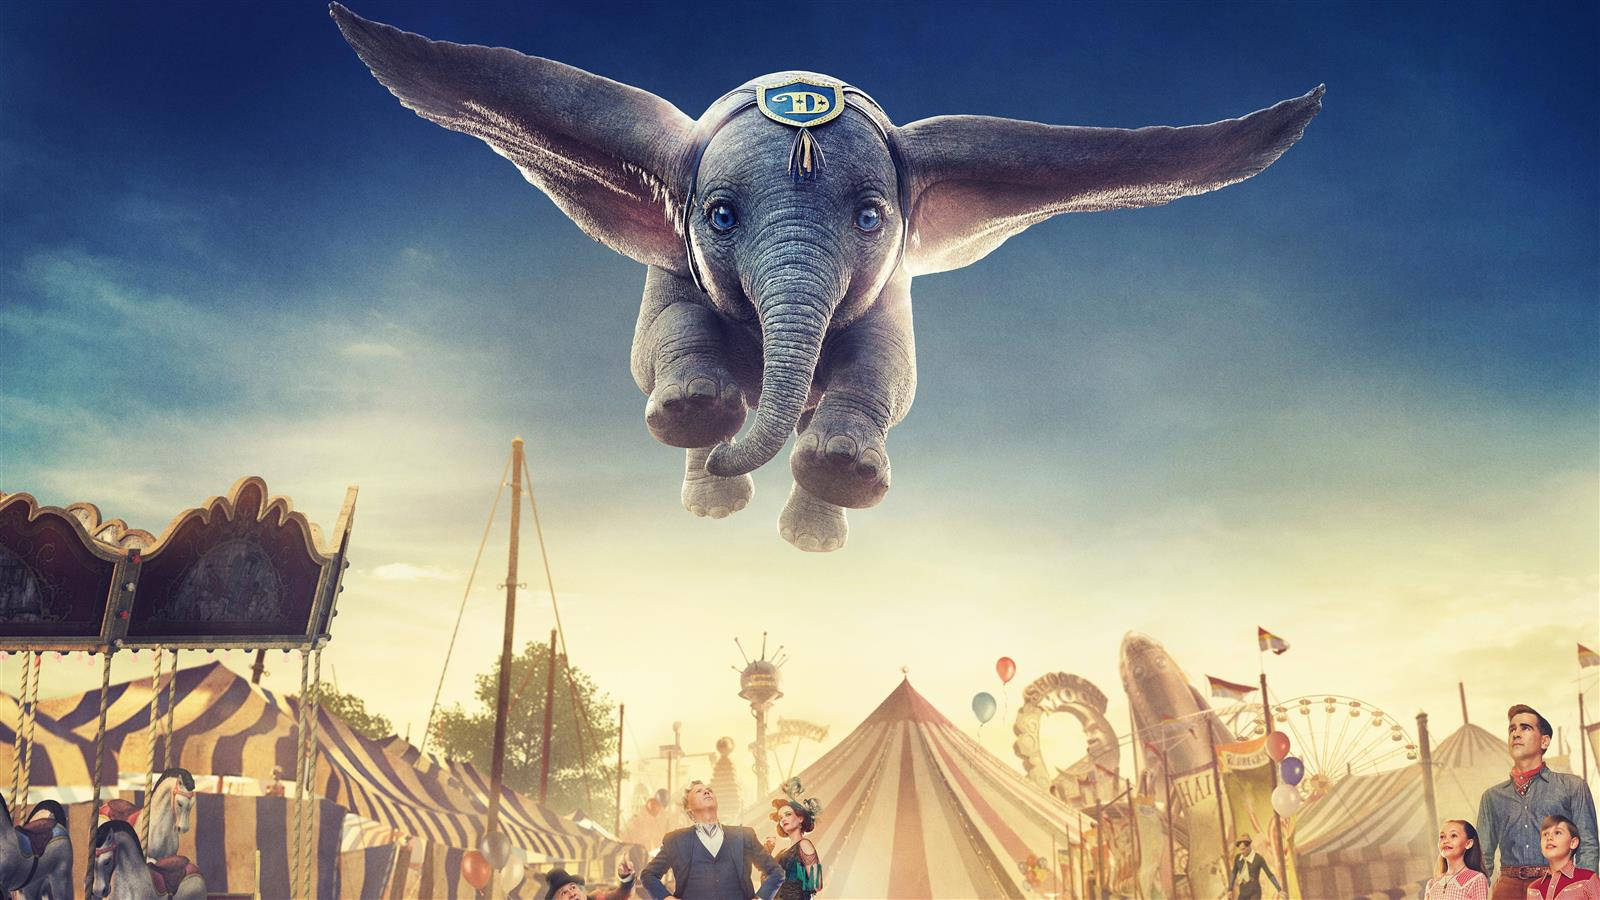 1600x900 5K Wallpaper of 2019 Dumbo Animation Film